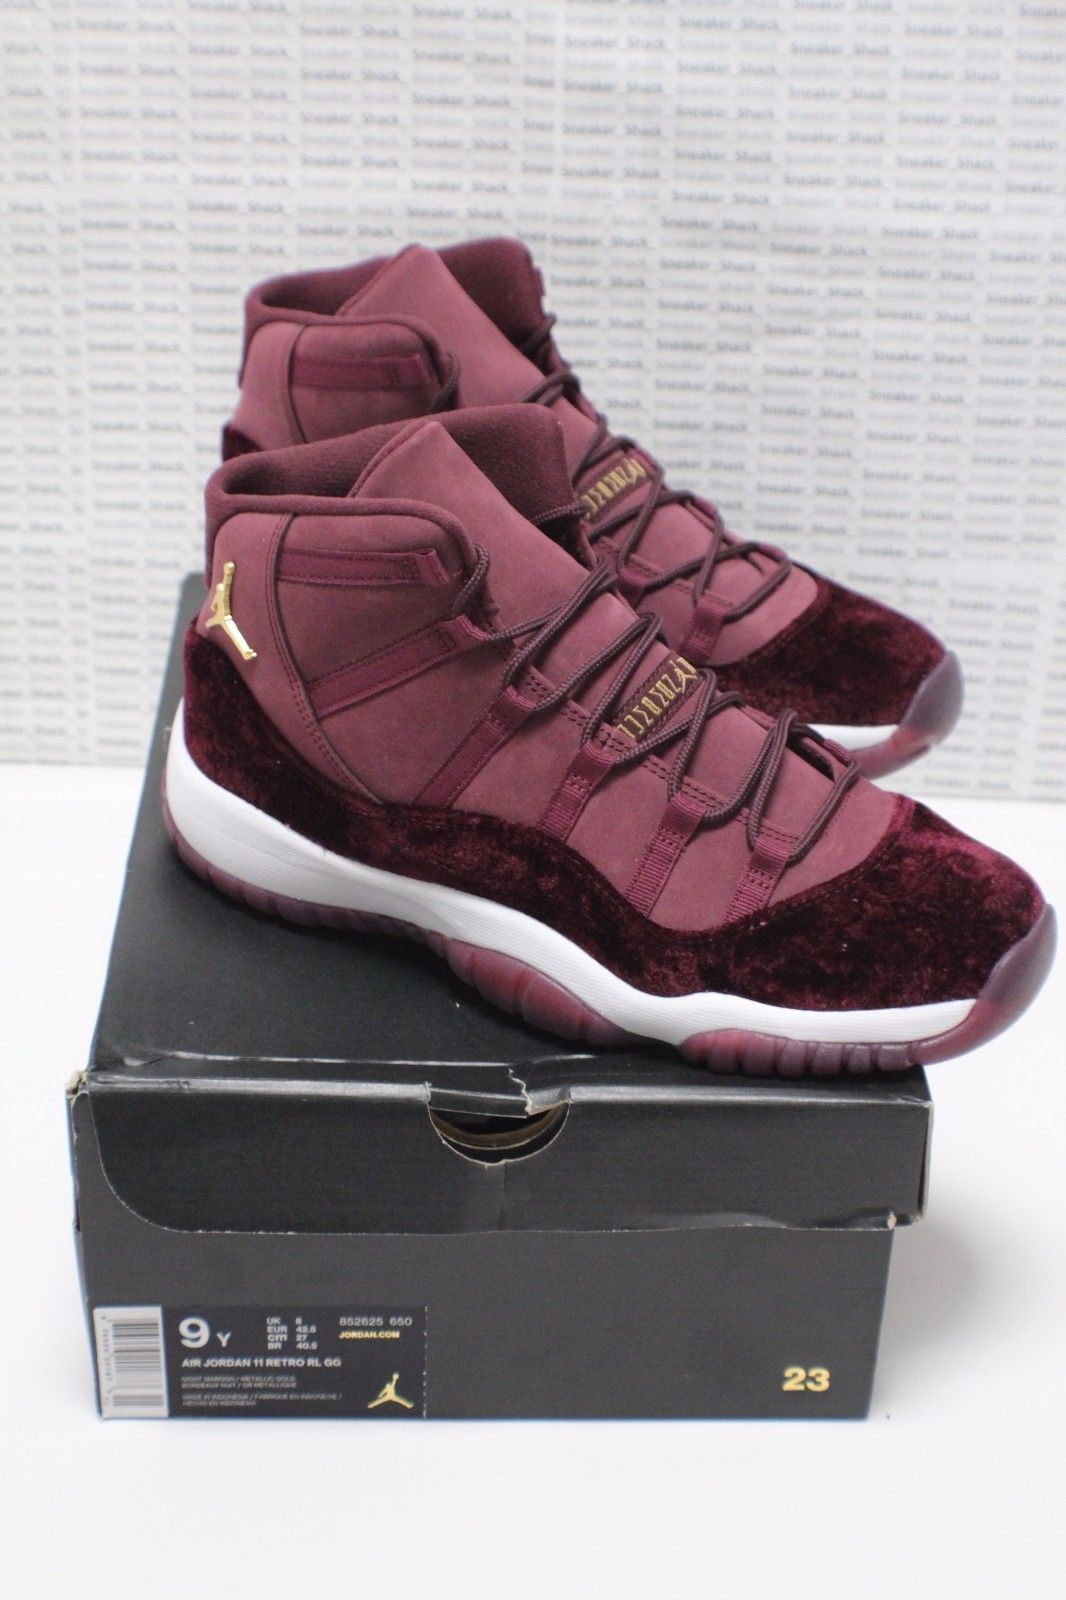 NIKE AIR JORDAN 11 XI RETRO GS HEIRESS SIZE 9 852625-650 MAROON RED VELVET